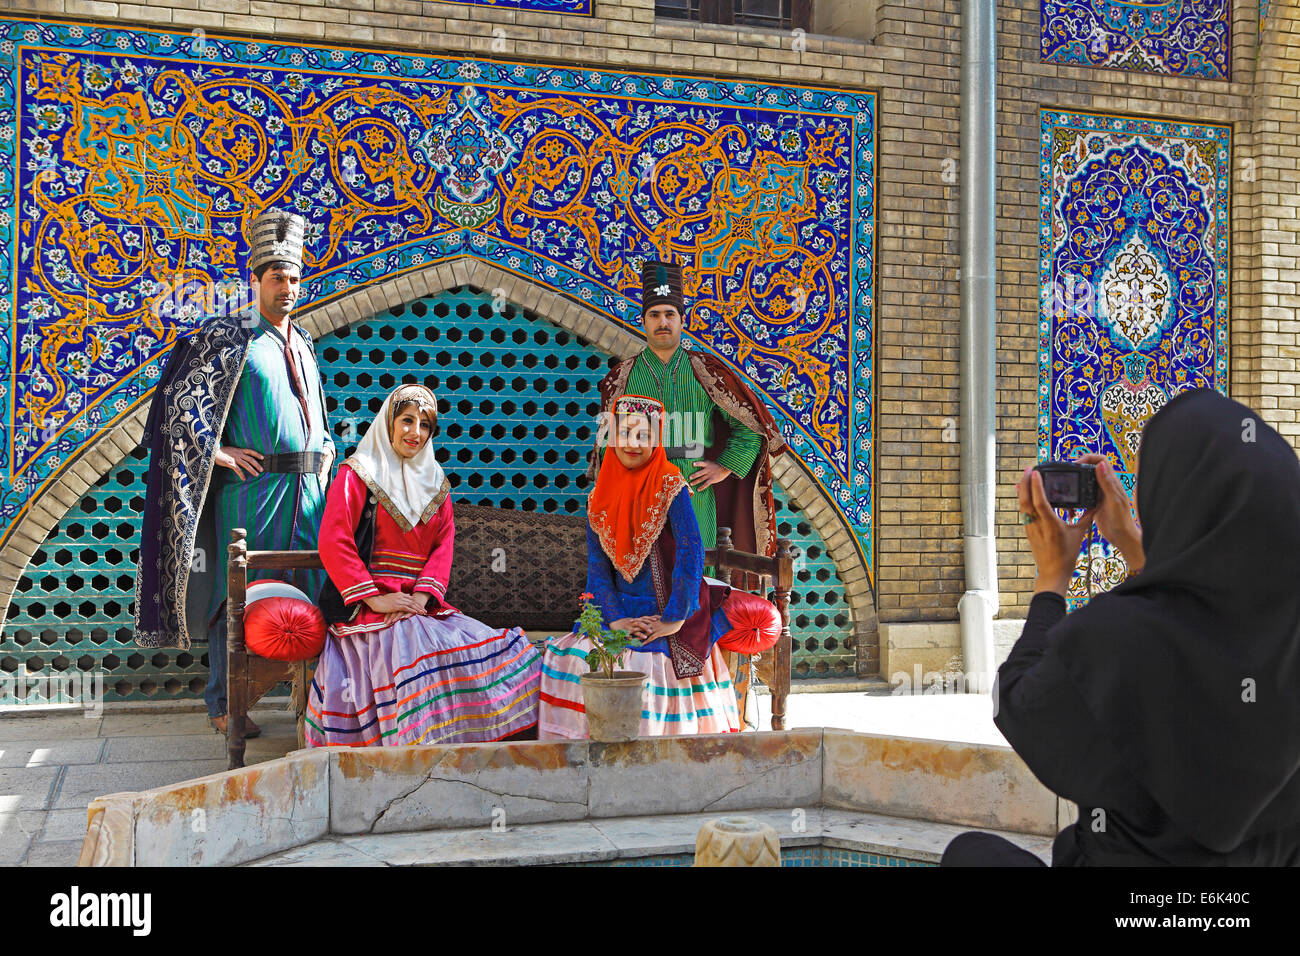 Wedding couples having their pictures taken in traditional costume, Golestan Palace, UNESCO World Cultural Heritage - Stock Image